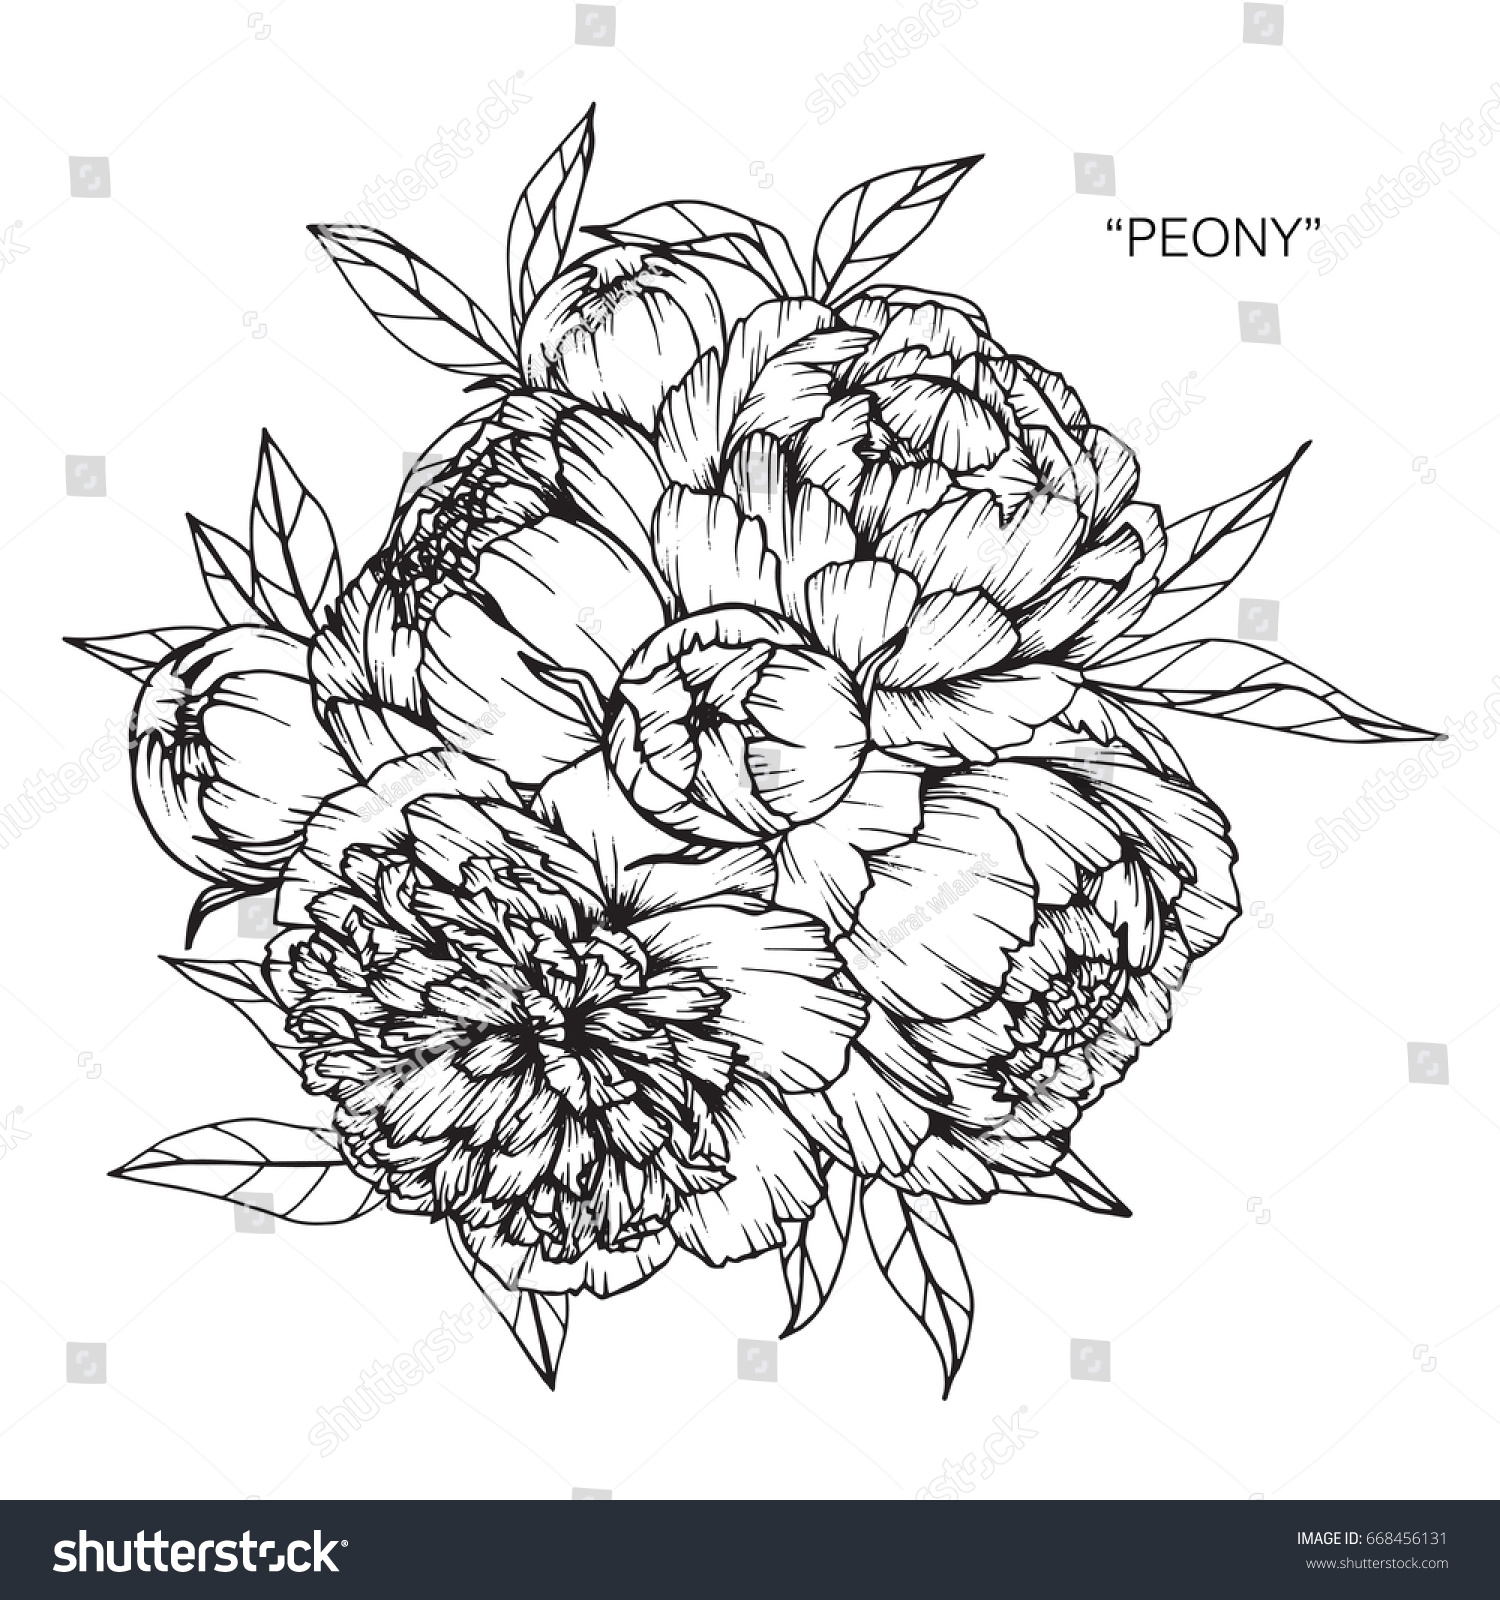 Bouquet Peony Flowers Drawing Sketch Lineart Stock Vector Royalty